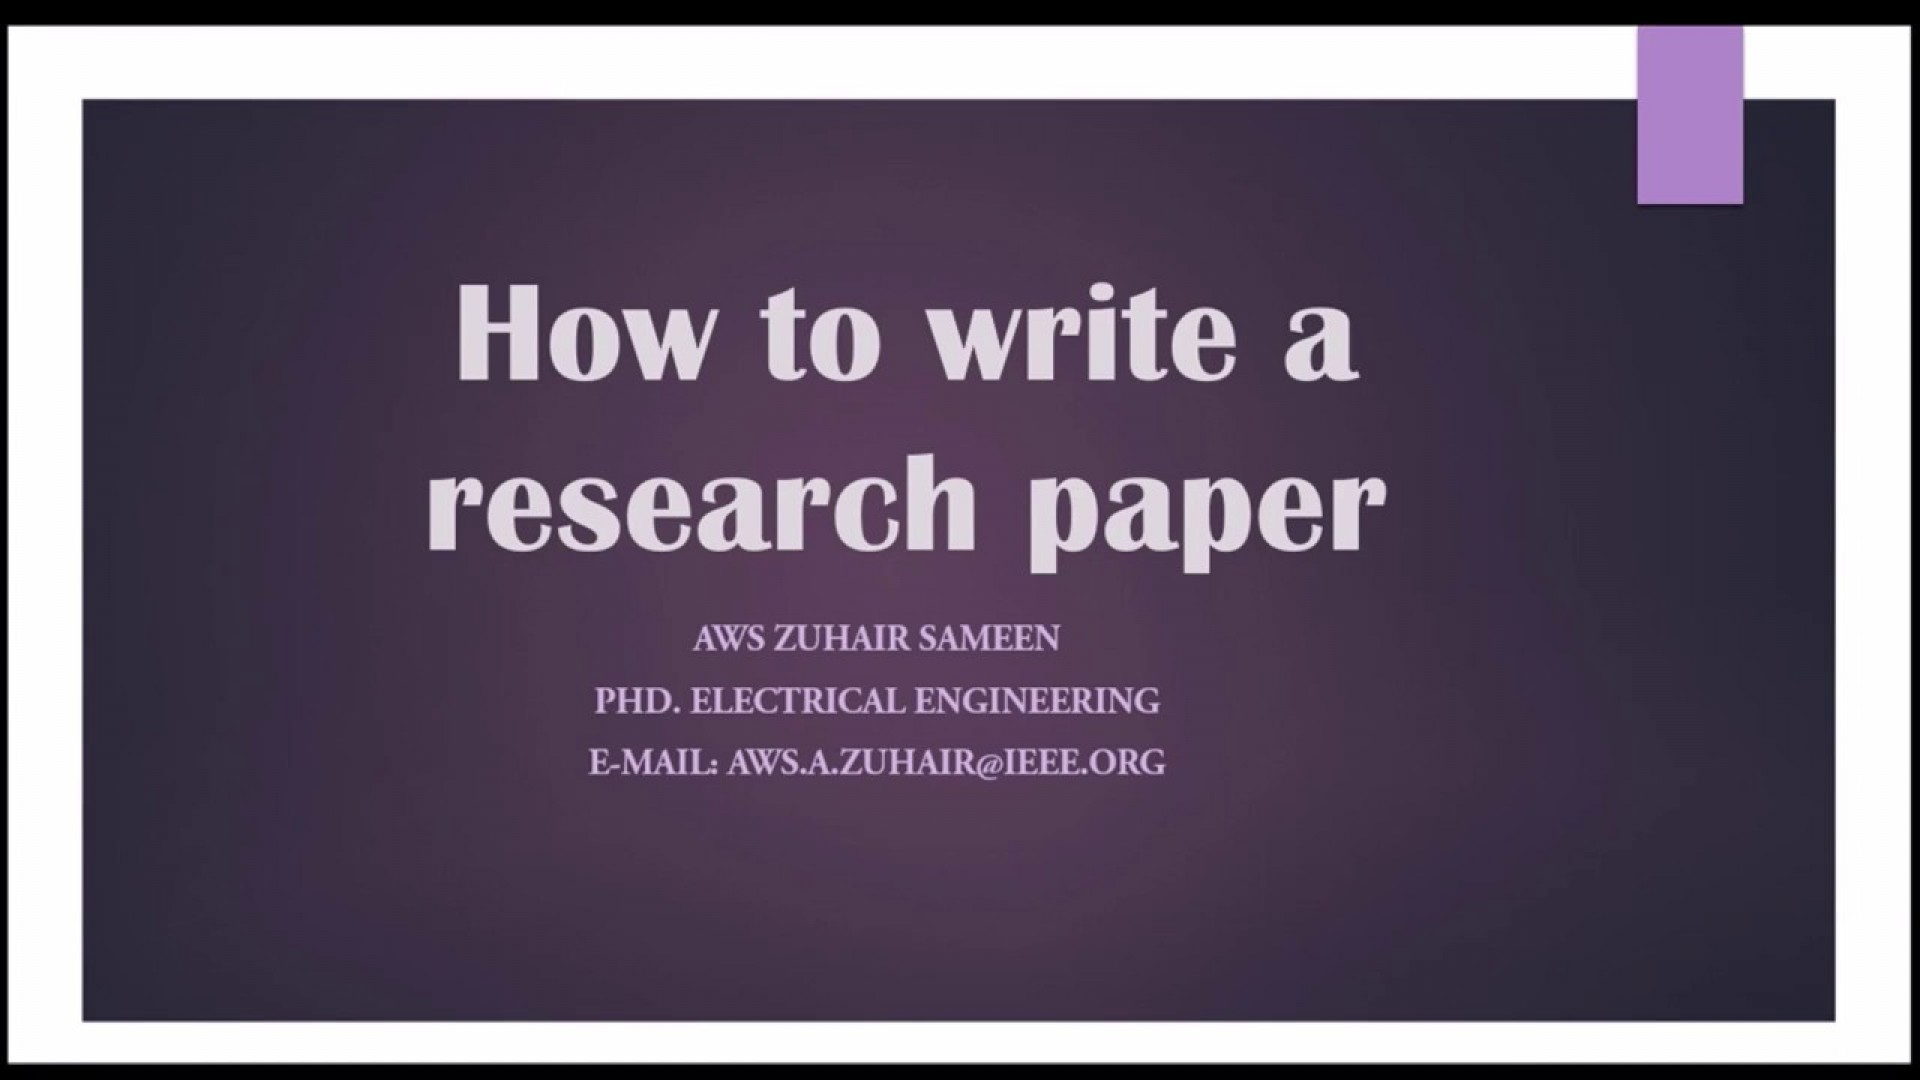 006 How To Write Results Of Research Paper Magnificent A And Discussion In Pdf The Section 1920